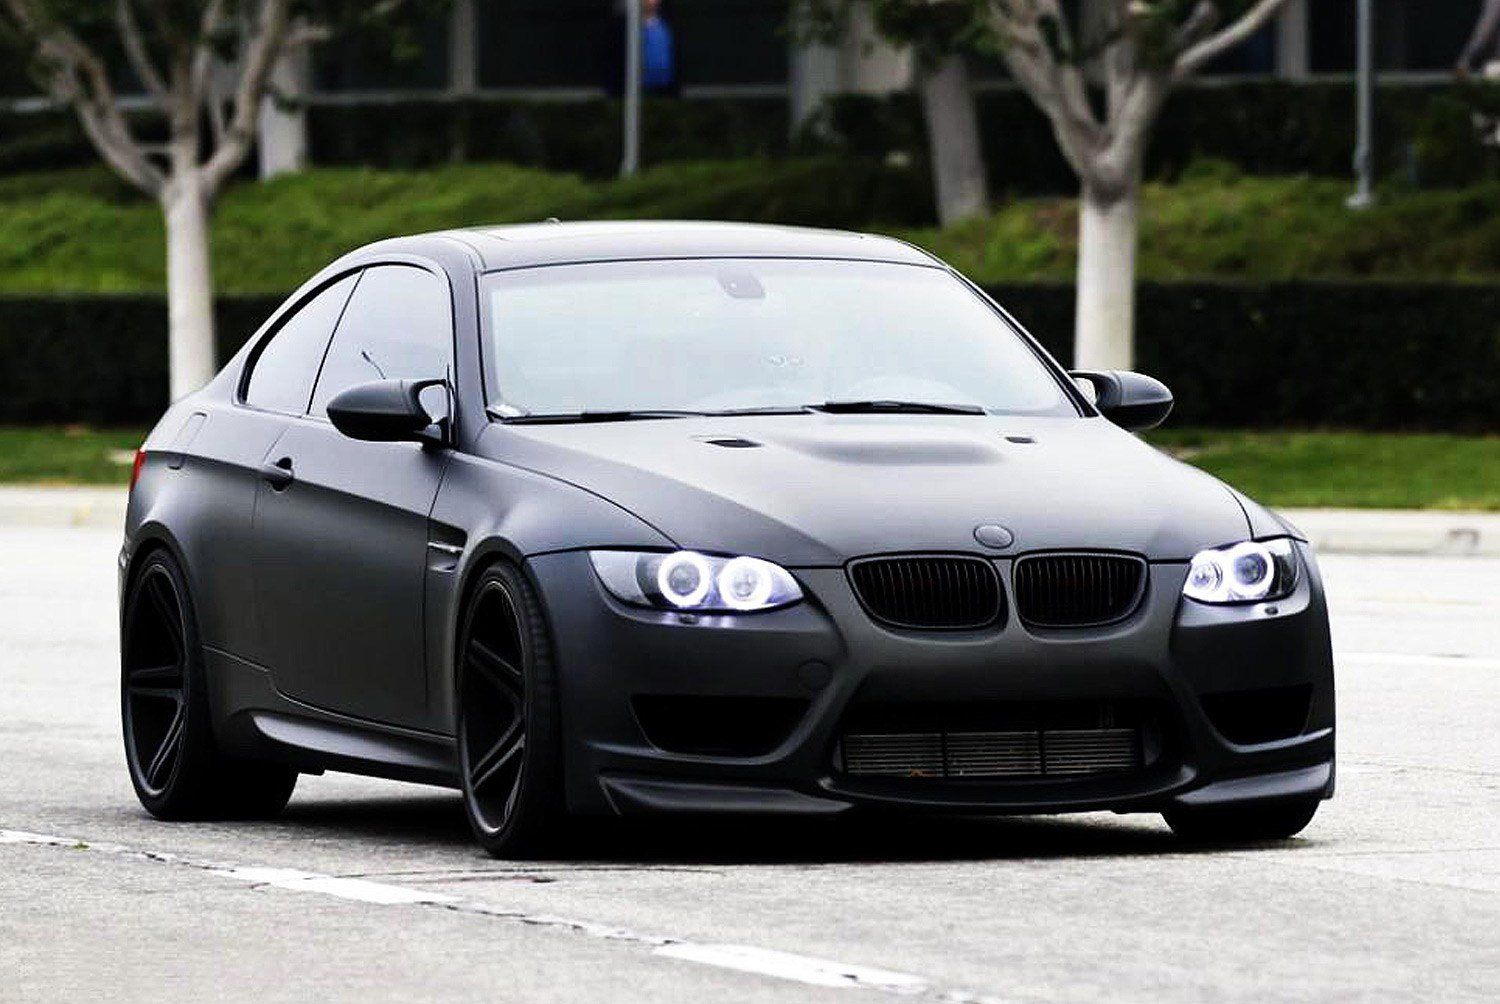 Latest Bmw Car Picture And Wallpaper – The Wow Style Free Download